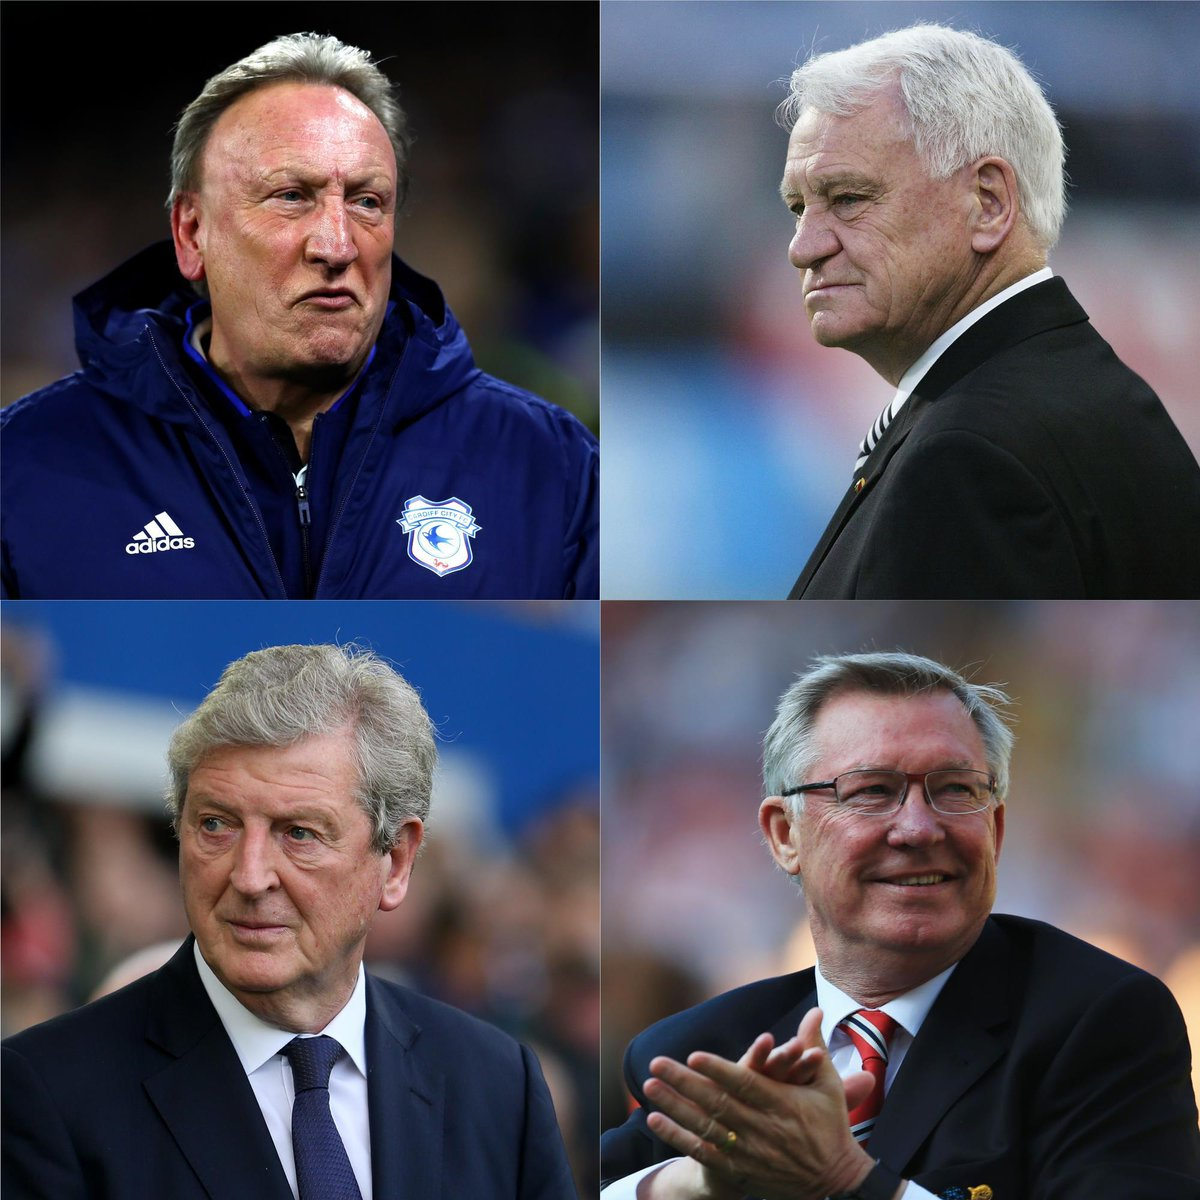 Neil Warnock becomes just the 4th manager to take charge in the #PL aged 70+, after Sir Bobby Robson, Sir Alex Ferguson & Roy Hodgson @CardiffCityFC